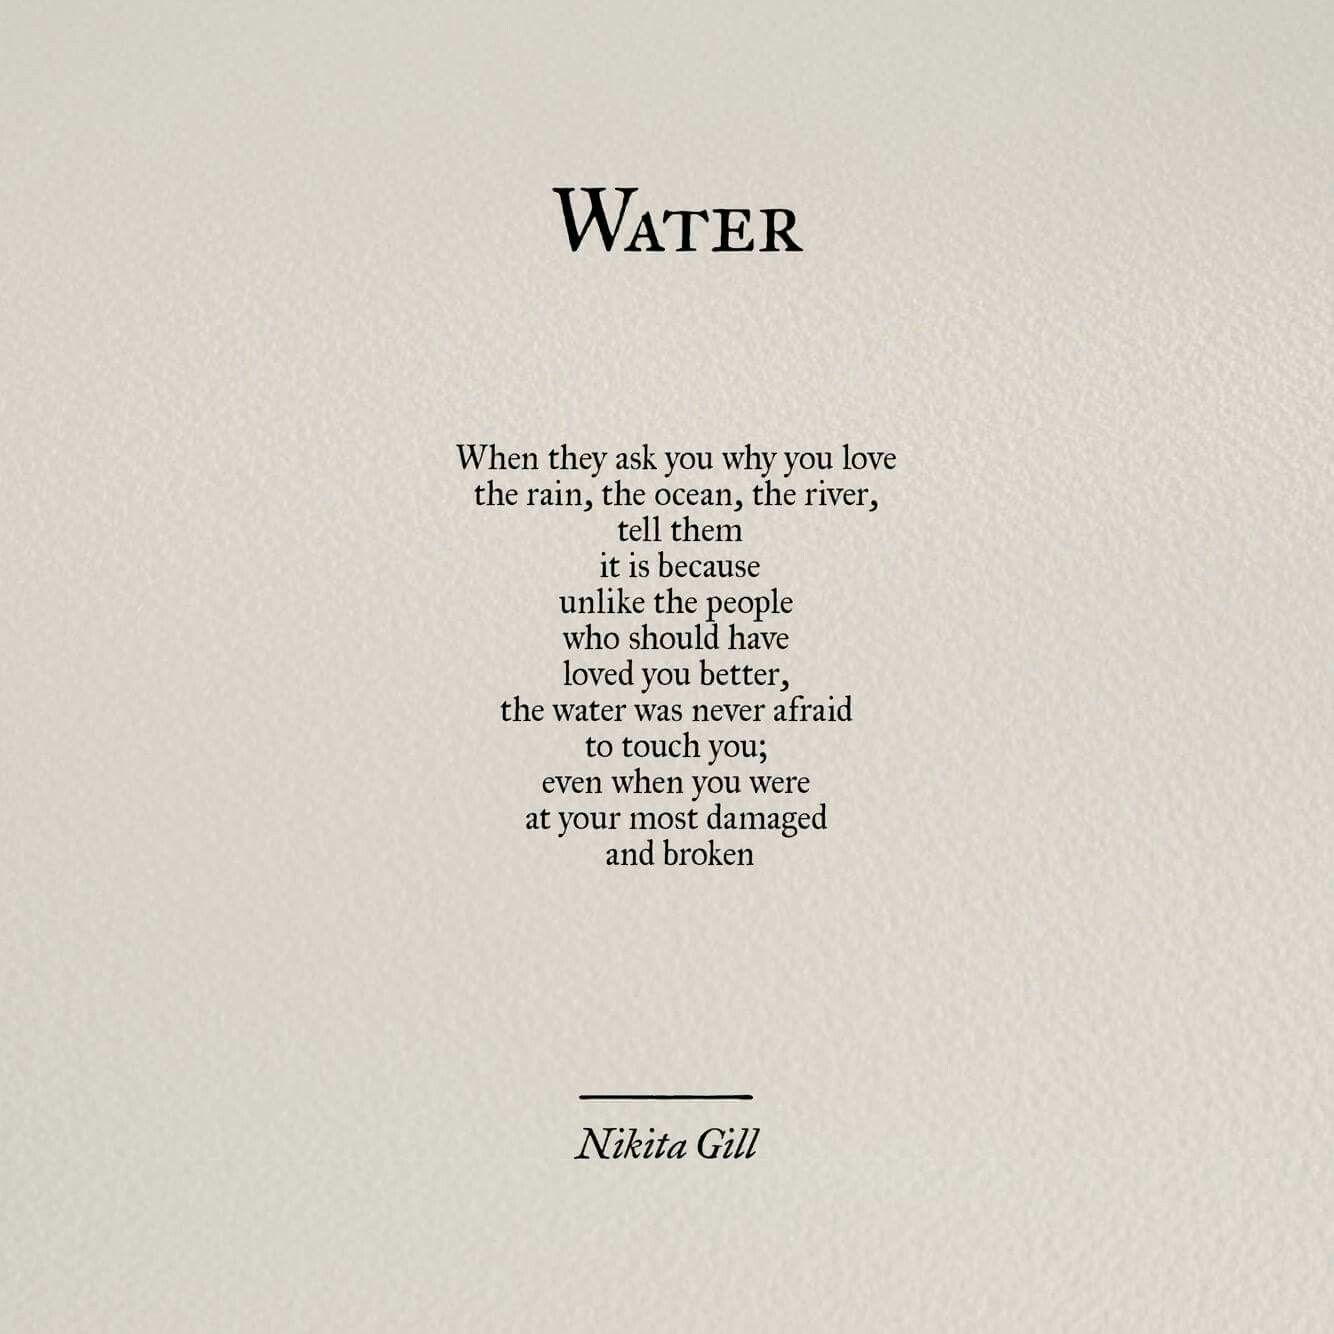 Water Love Quotes: Quotes, Poems, Poem Quotes